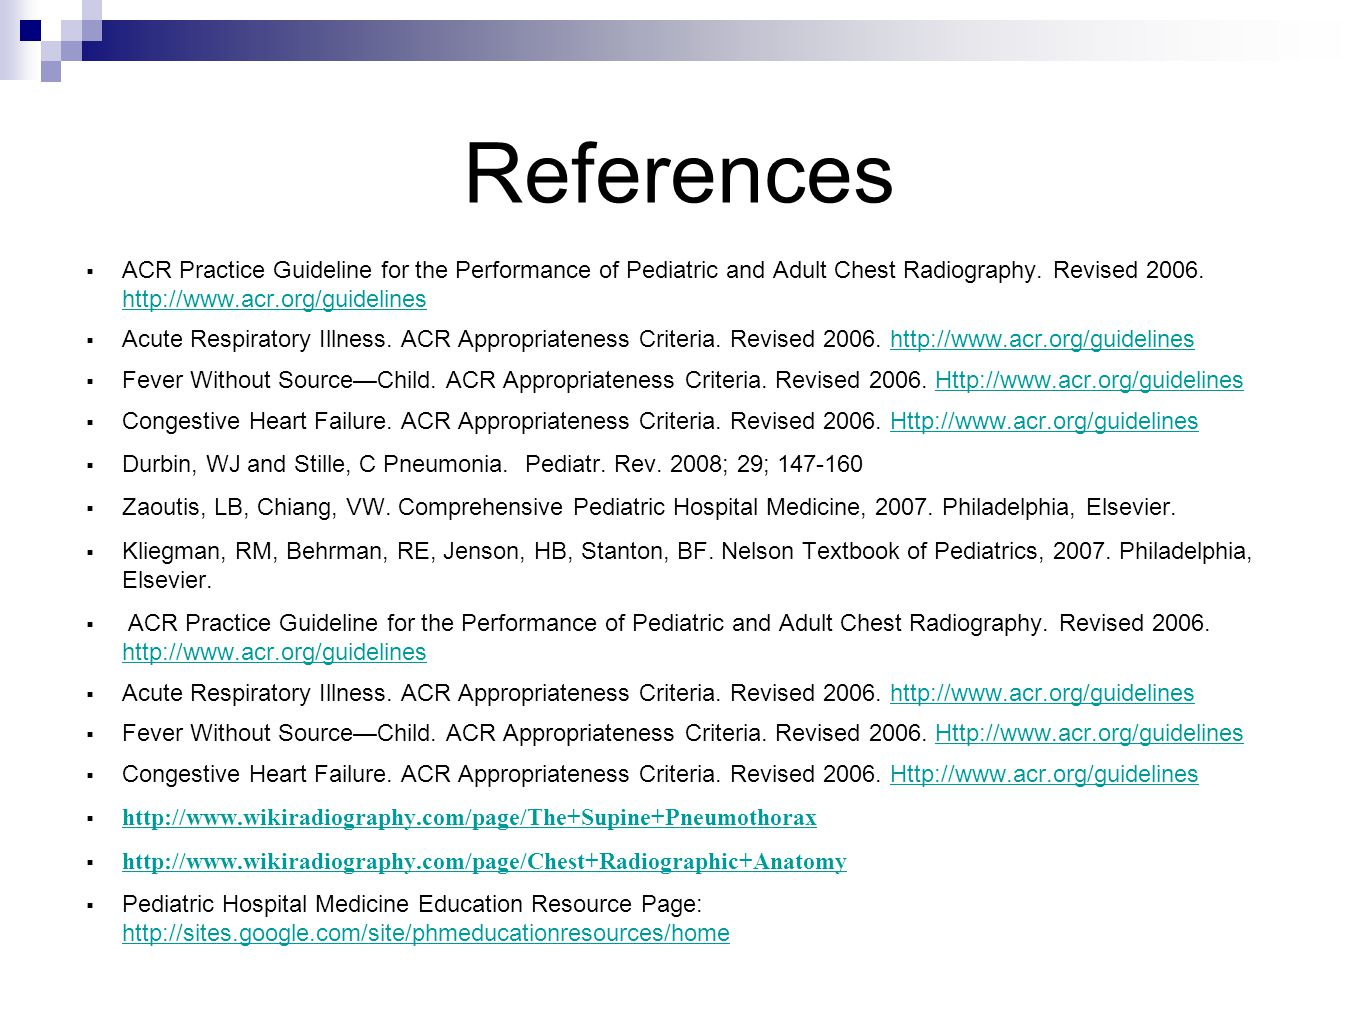 References ACR Practice Guideline for the Performance of Pediatric and Adult Chest Radiography. Revised 2006. http://www.acr.org/guidelines.